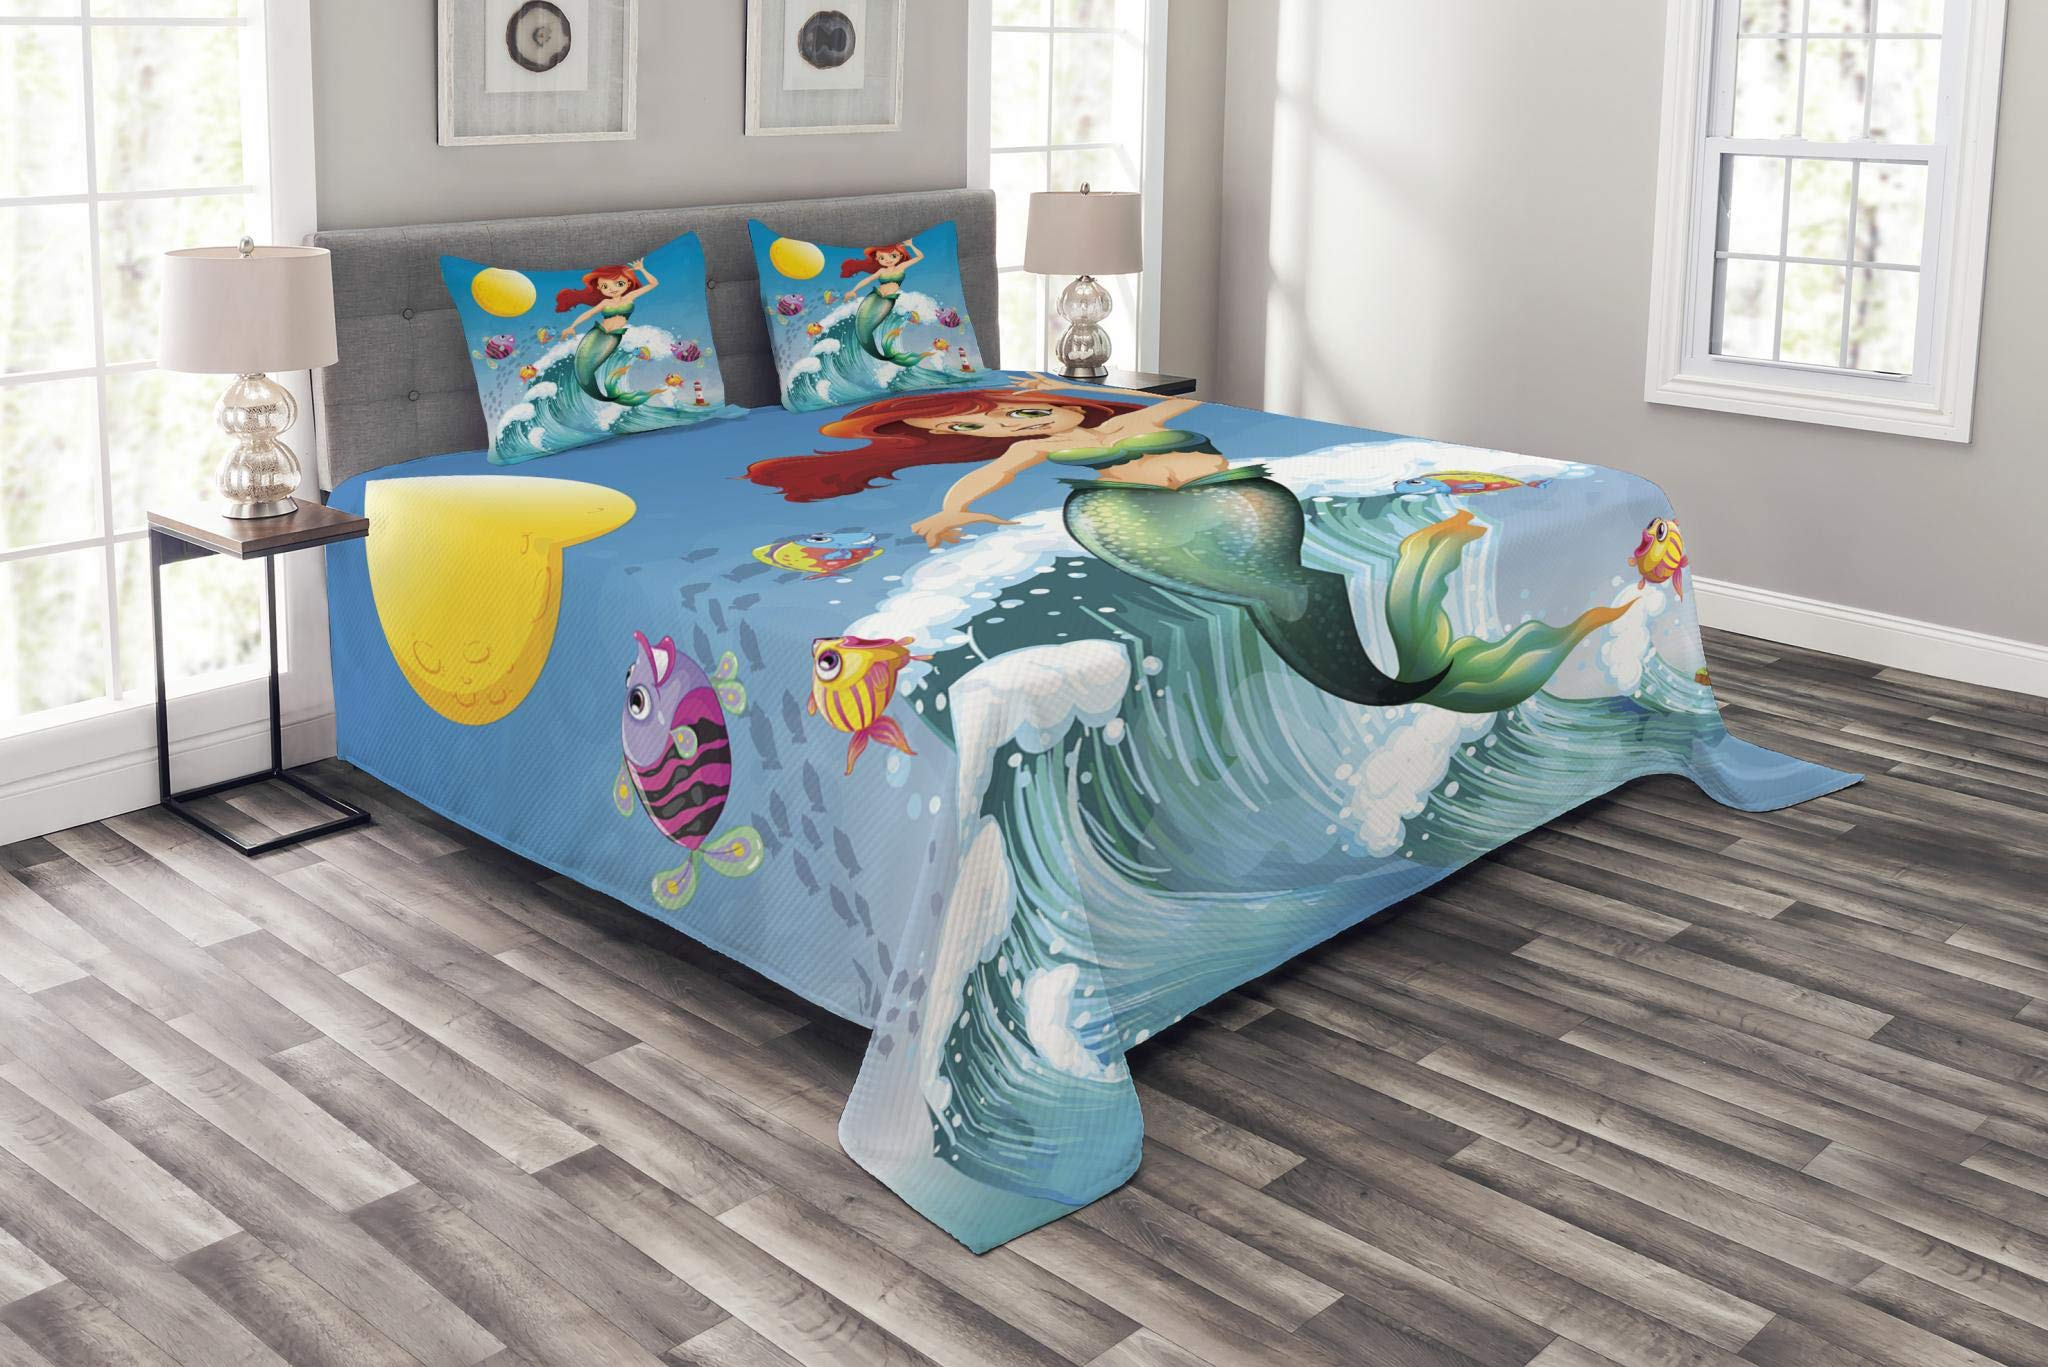 Ambesonne Mermaid Bedspread, Illustration of Little Mermaid on top of a Big Wave in The Surf with Fish Kids, Decorative Quilted 3 Piece Coverlet Set with 2 Pillow Shams, King Size, Blue Green by Ambesonne